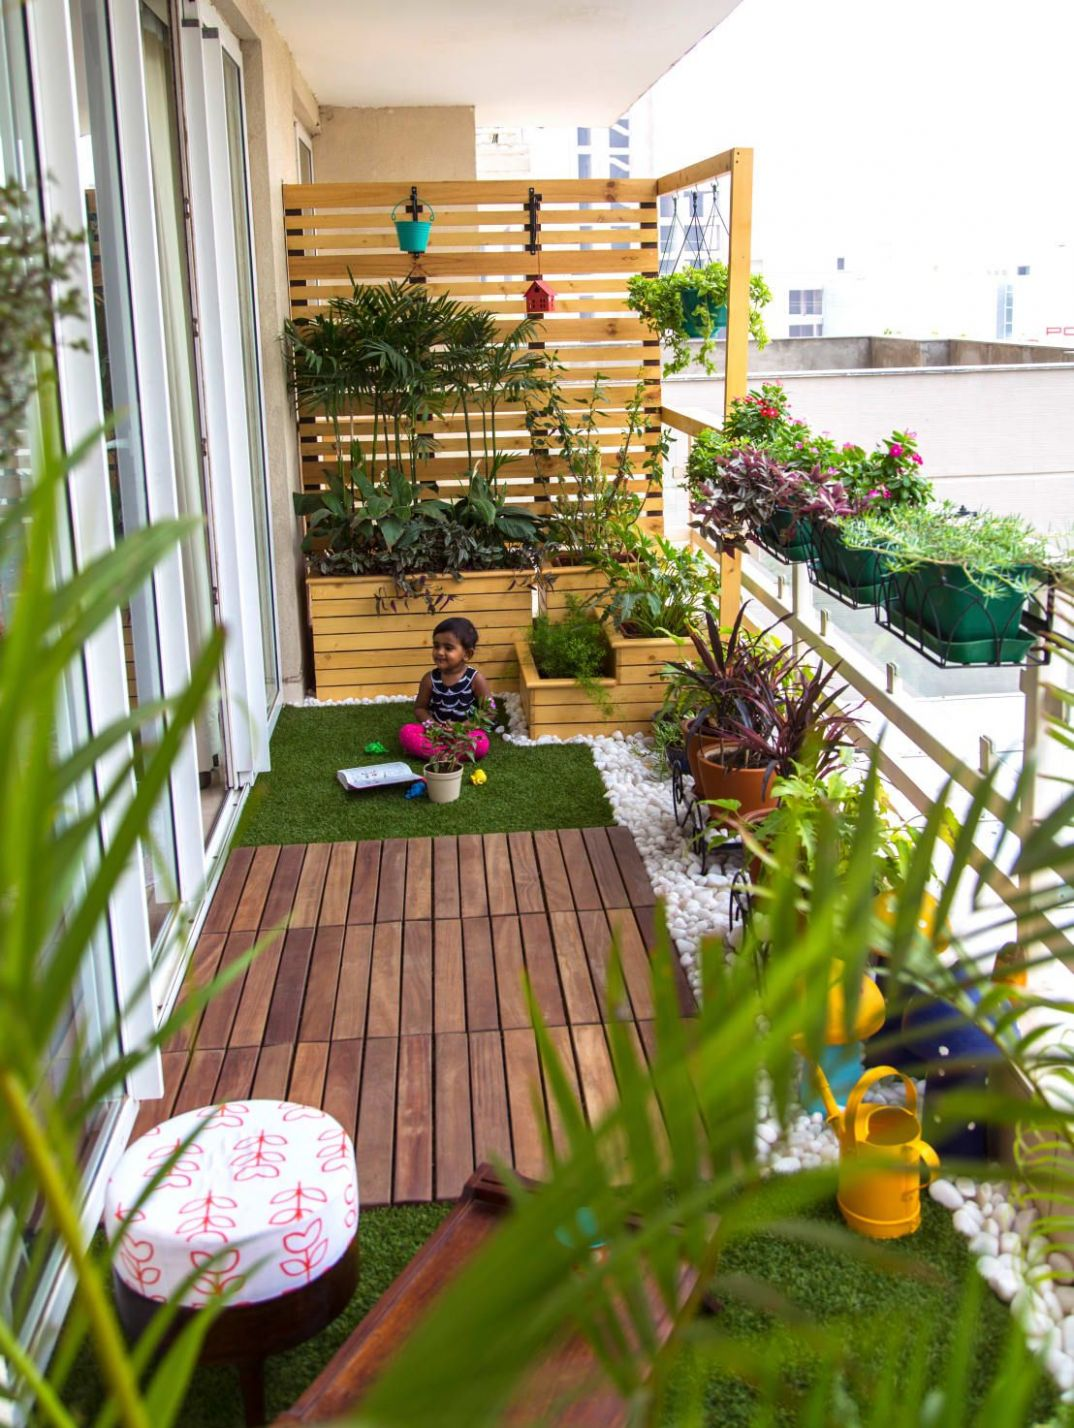 10 Smart Balcony Garden Ideas That are Awesome | Small balcony ...